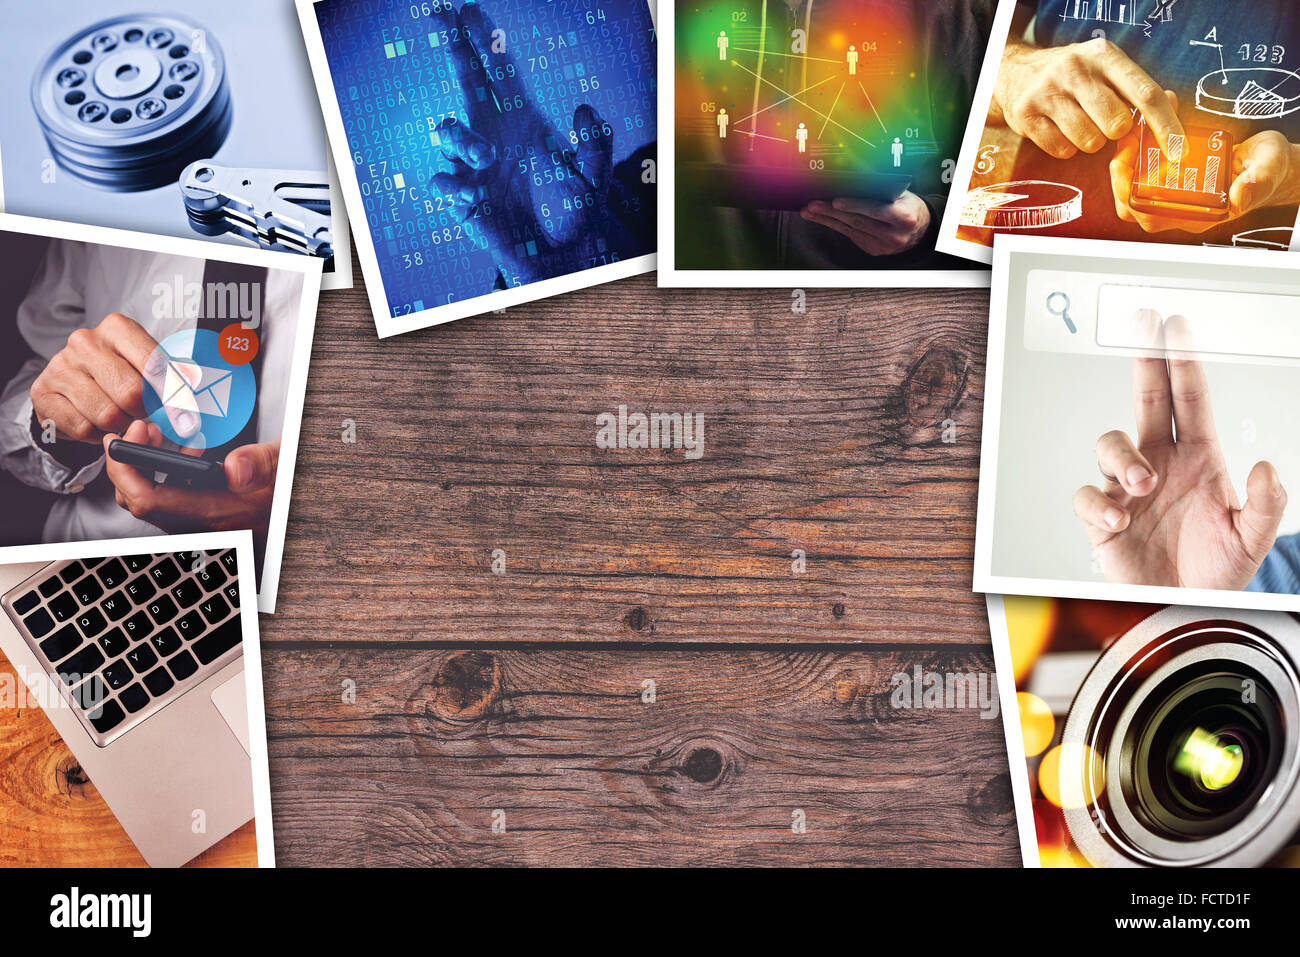 Modern computer technology photo collage, stack of tech and internet themed pictures on wooden office desk with - Stock Image